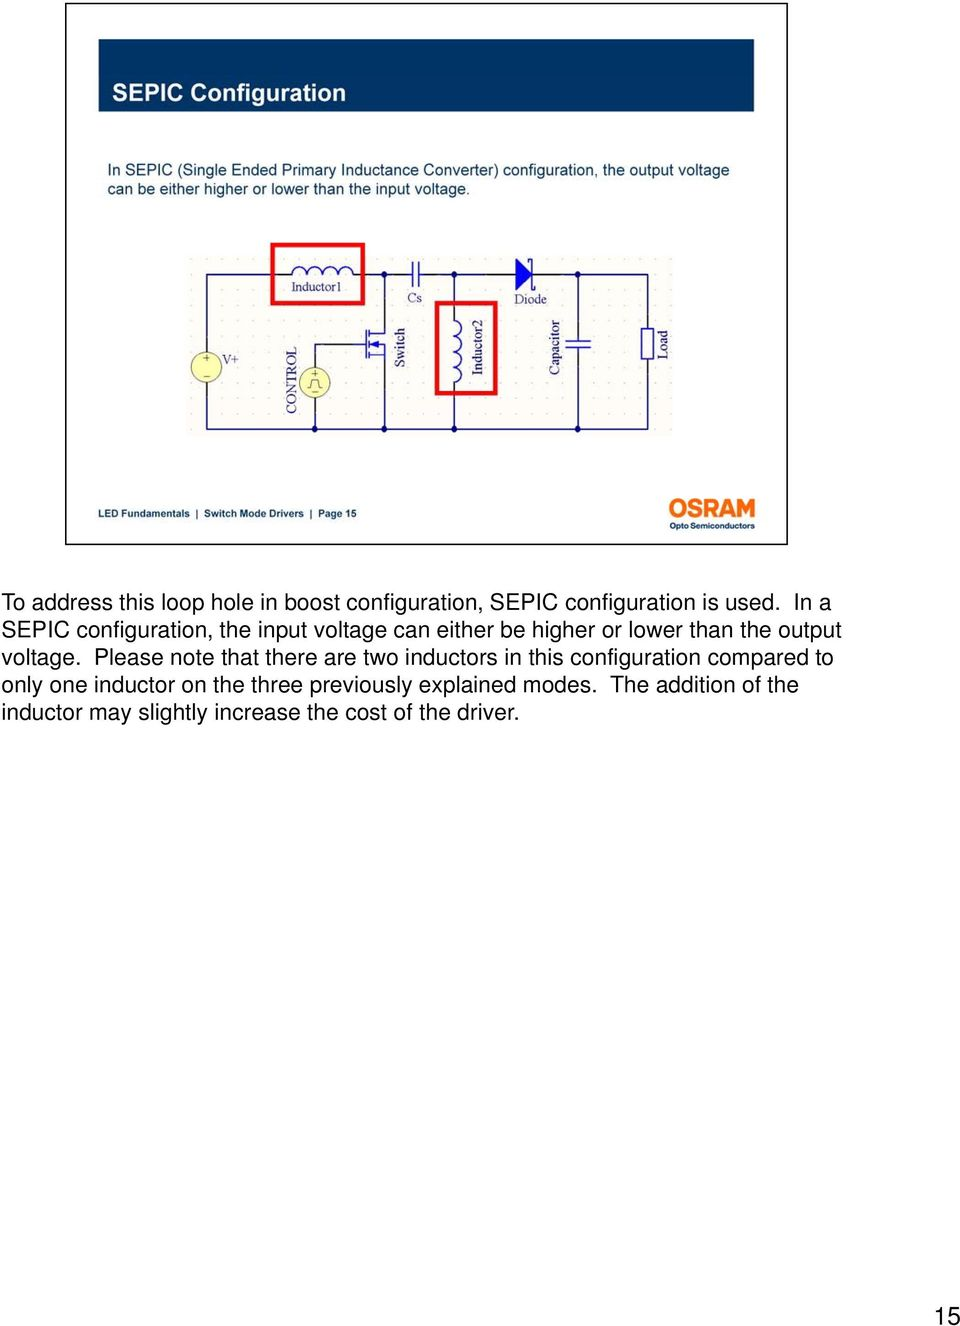 Please note that there are two inductors in this configuration compared to only one inductor on